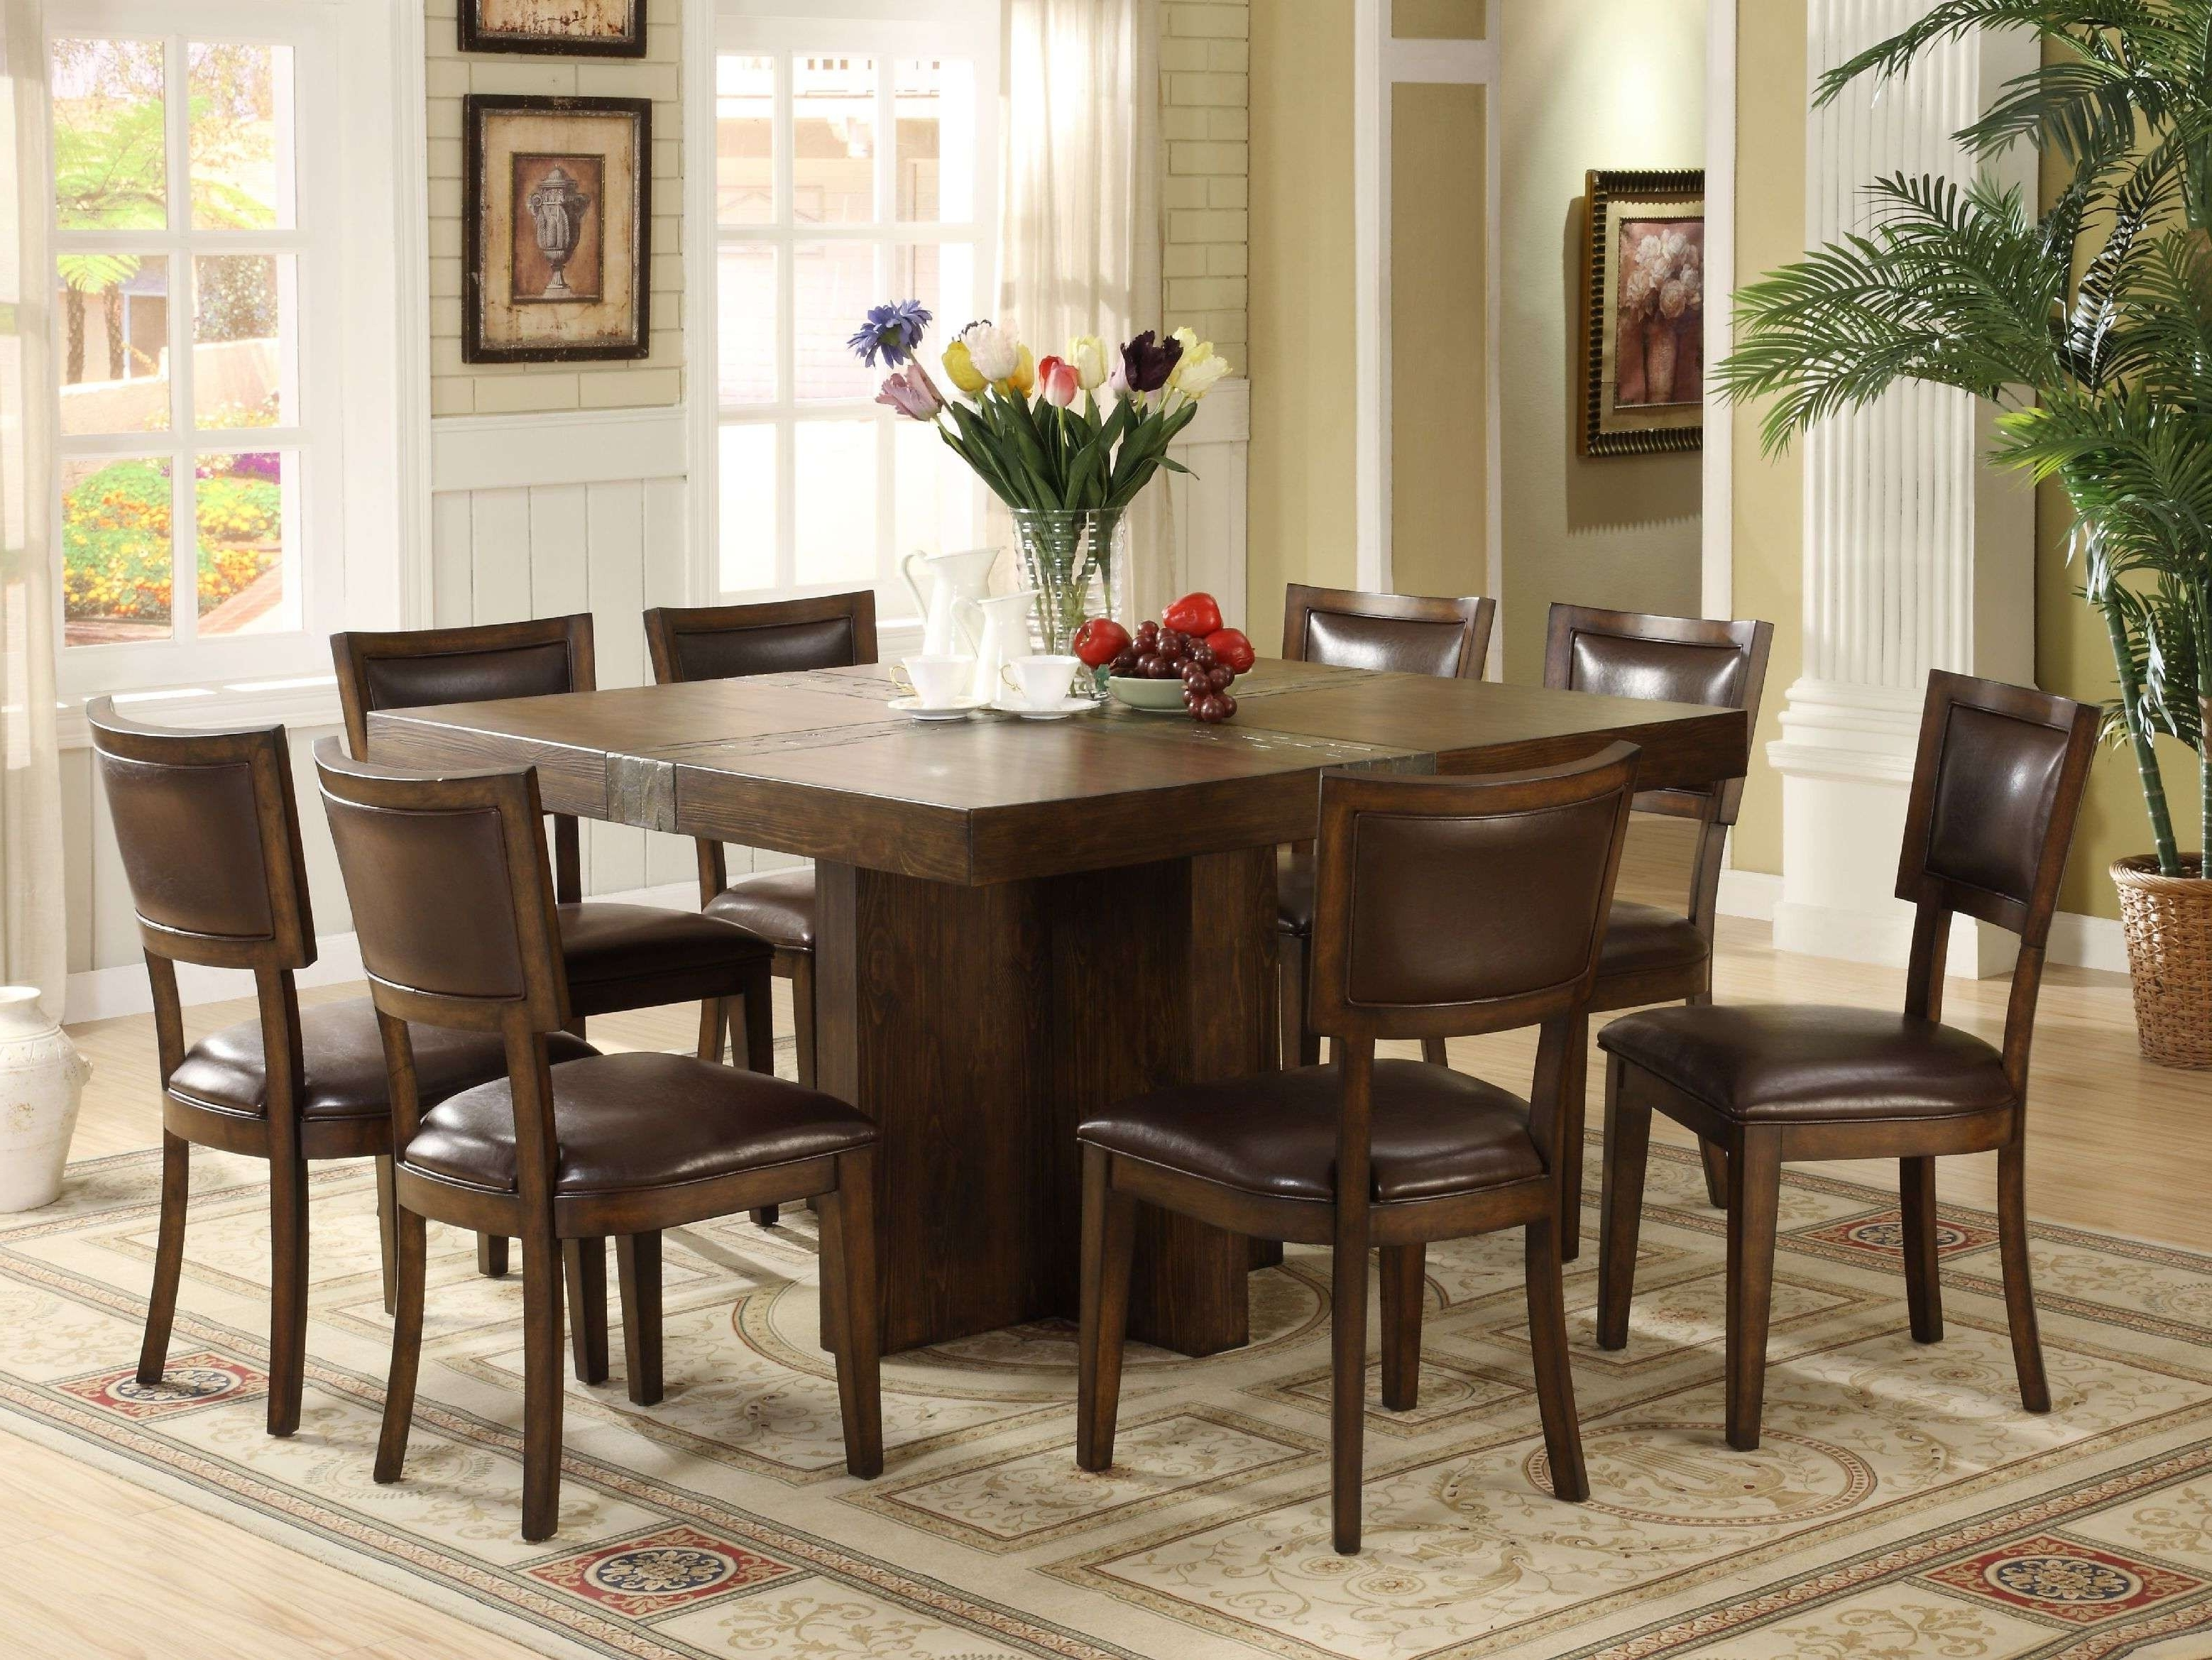 Best And Newest 10 Seater Dining Table And Chairs Beautiful Best 8 Seater Dining Throughout Eight Seater Dining Tables And Chairs (View 8 of 25)